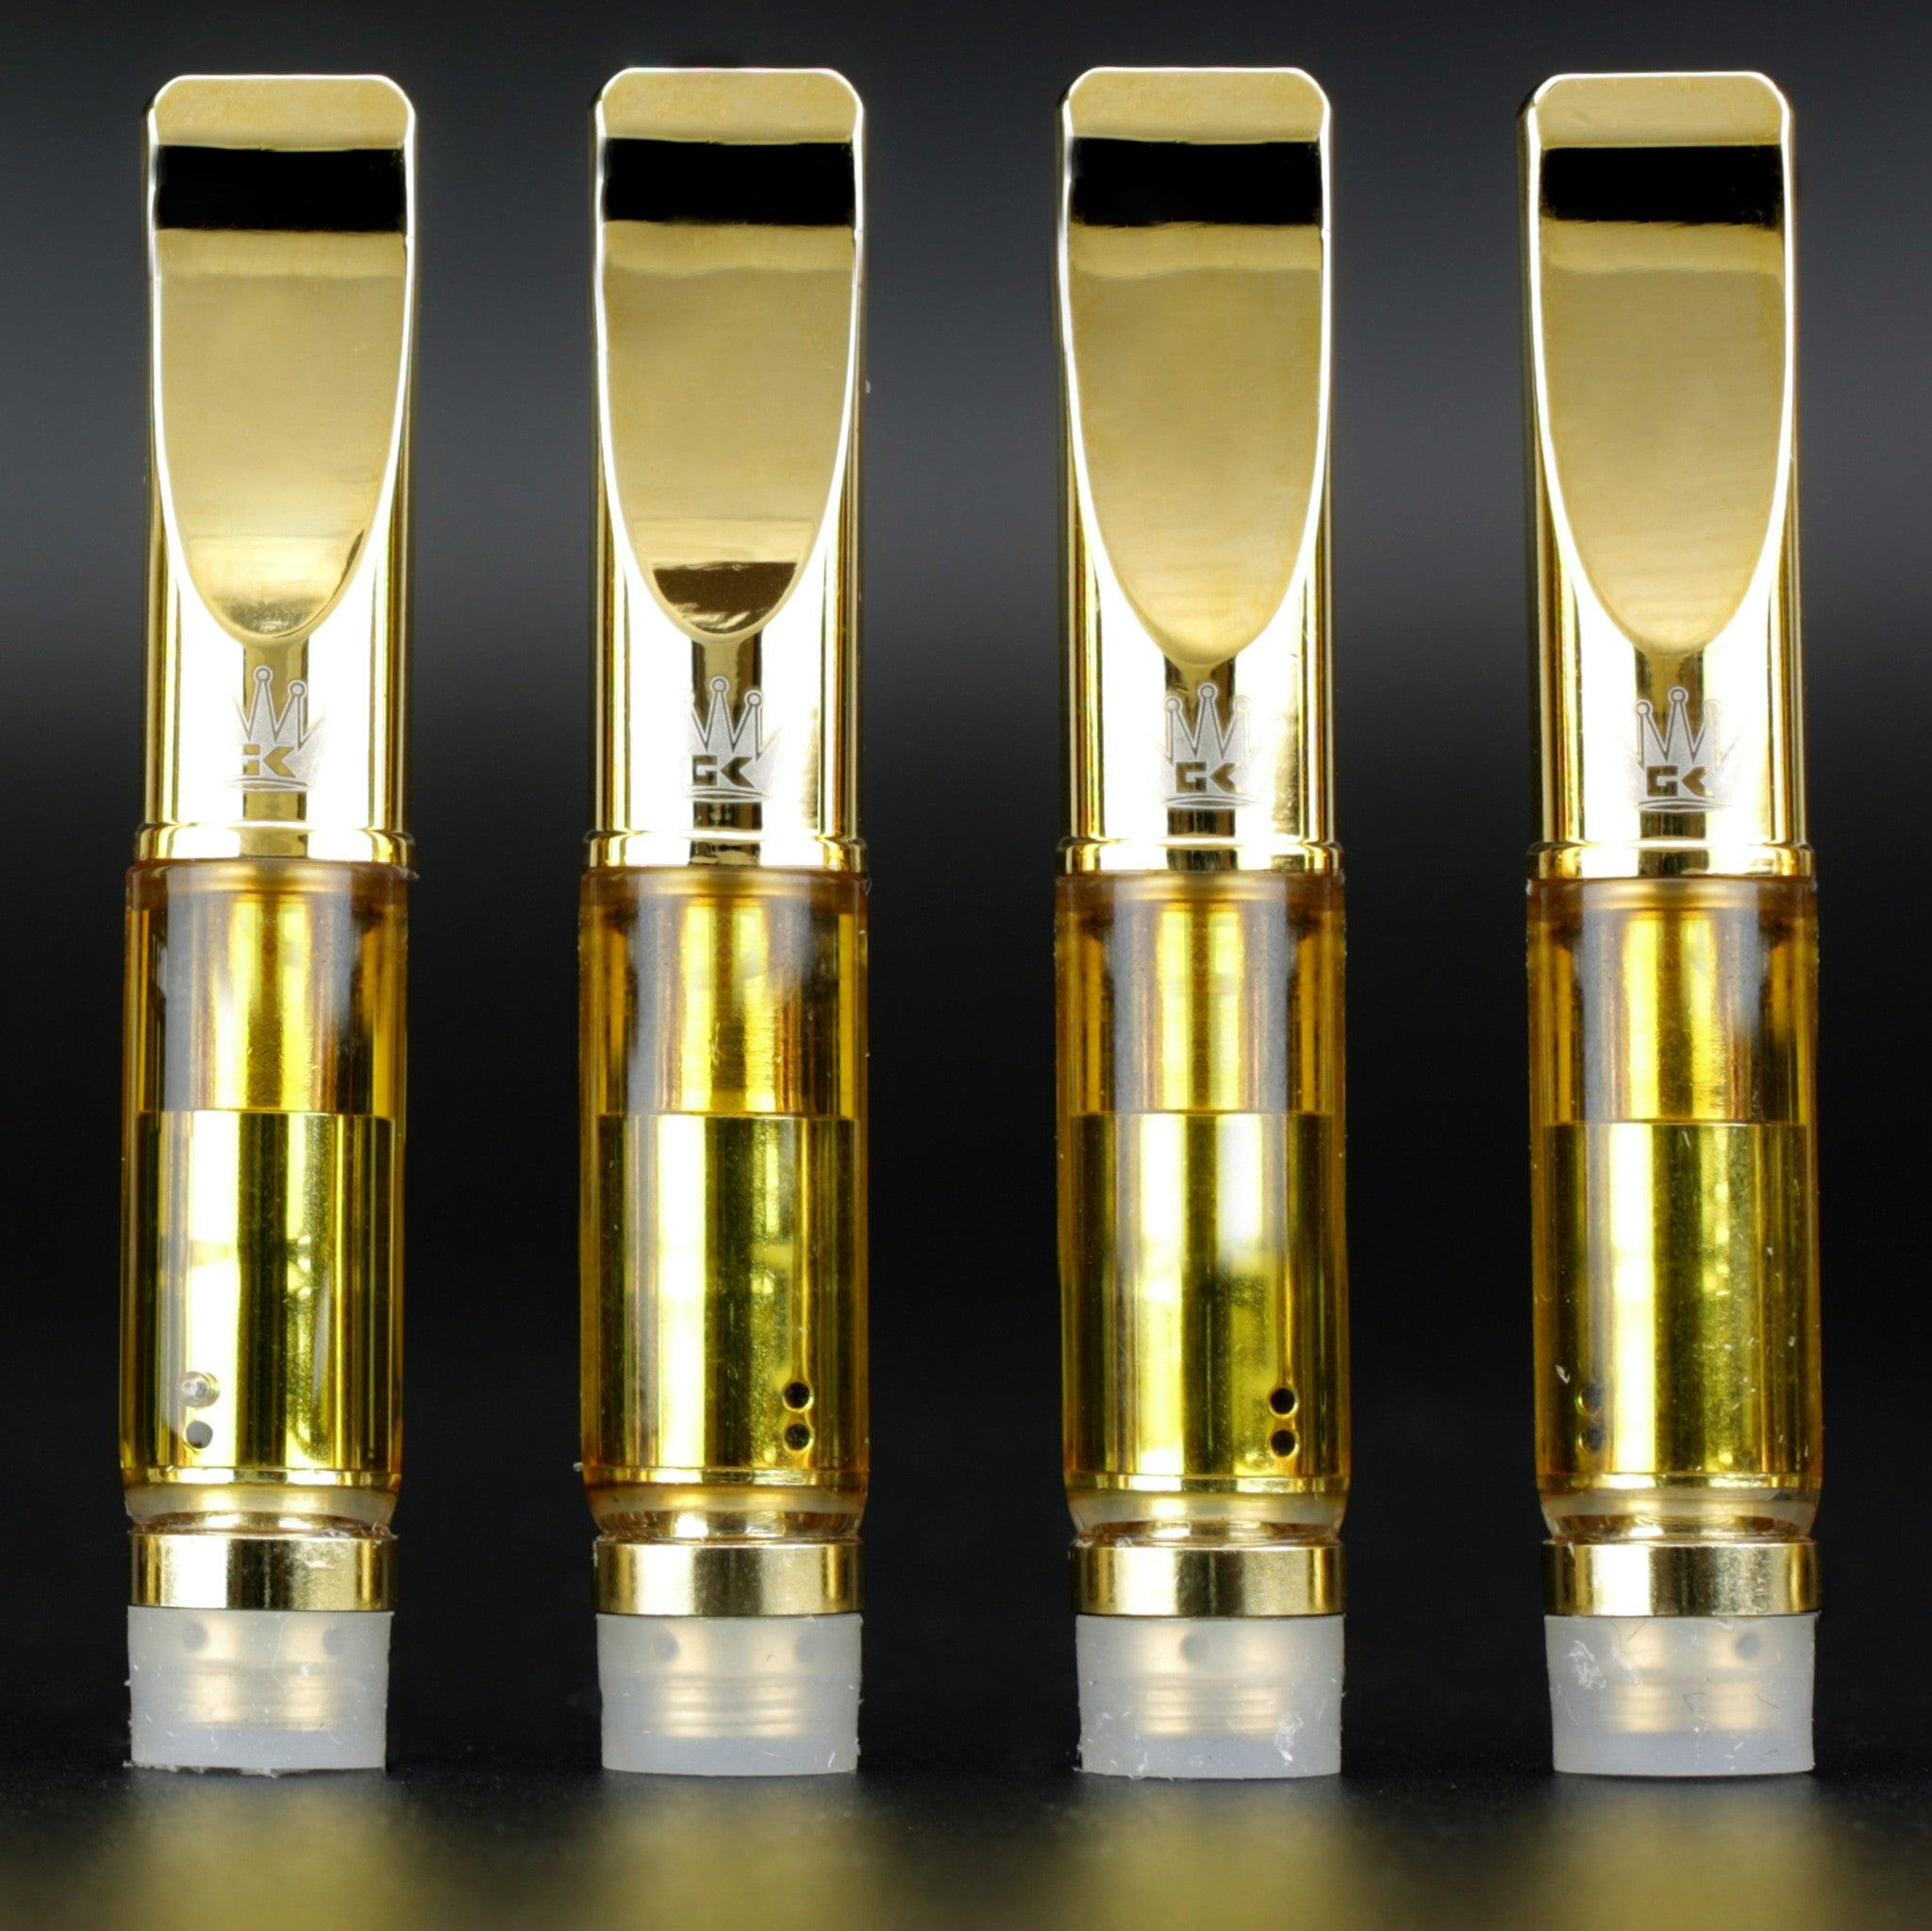 Cartridges and product photos - Revo Designs - 2